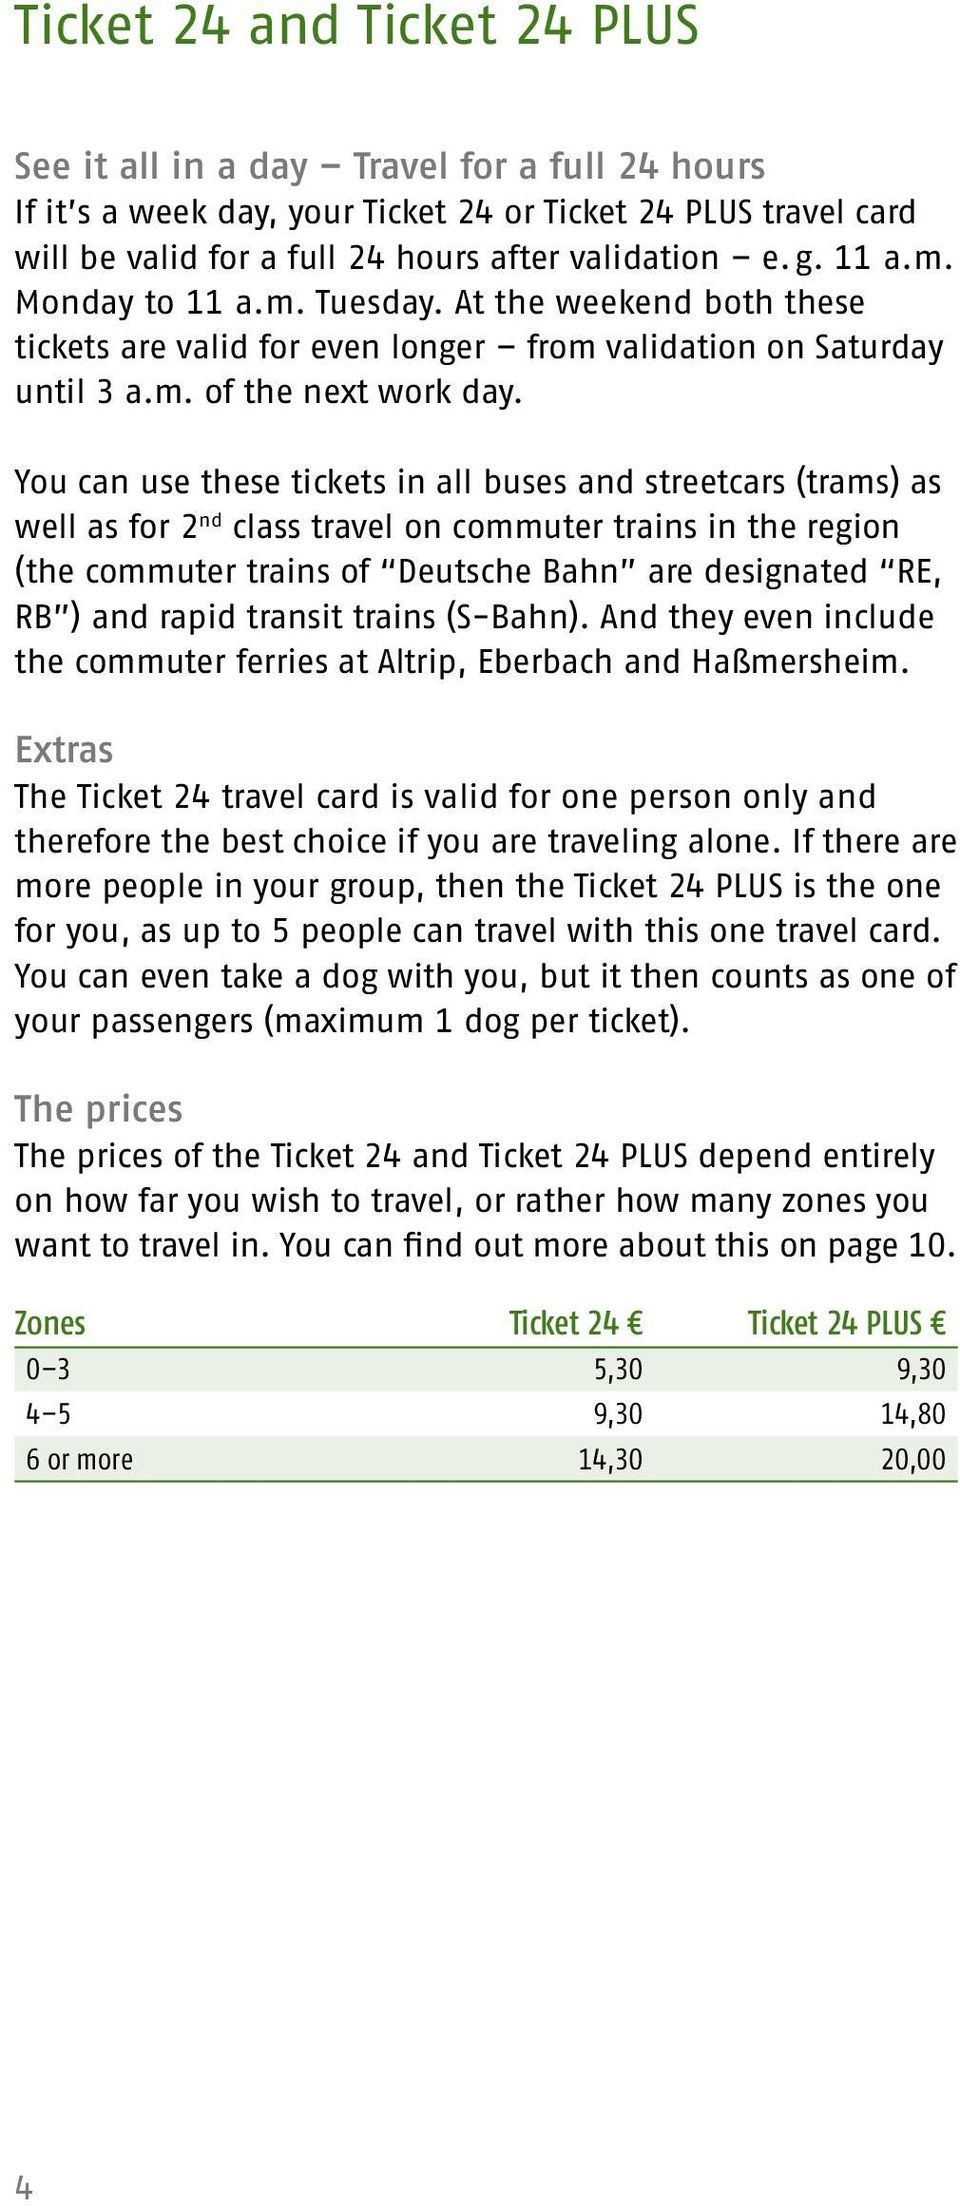 You can use these tickets in all buses and streetcars (trams) as well as for 2 nd class travel on commuter trains in the region (the commuter trains of Deutsche Bahn are designated RE, RB ) and rapid